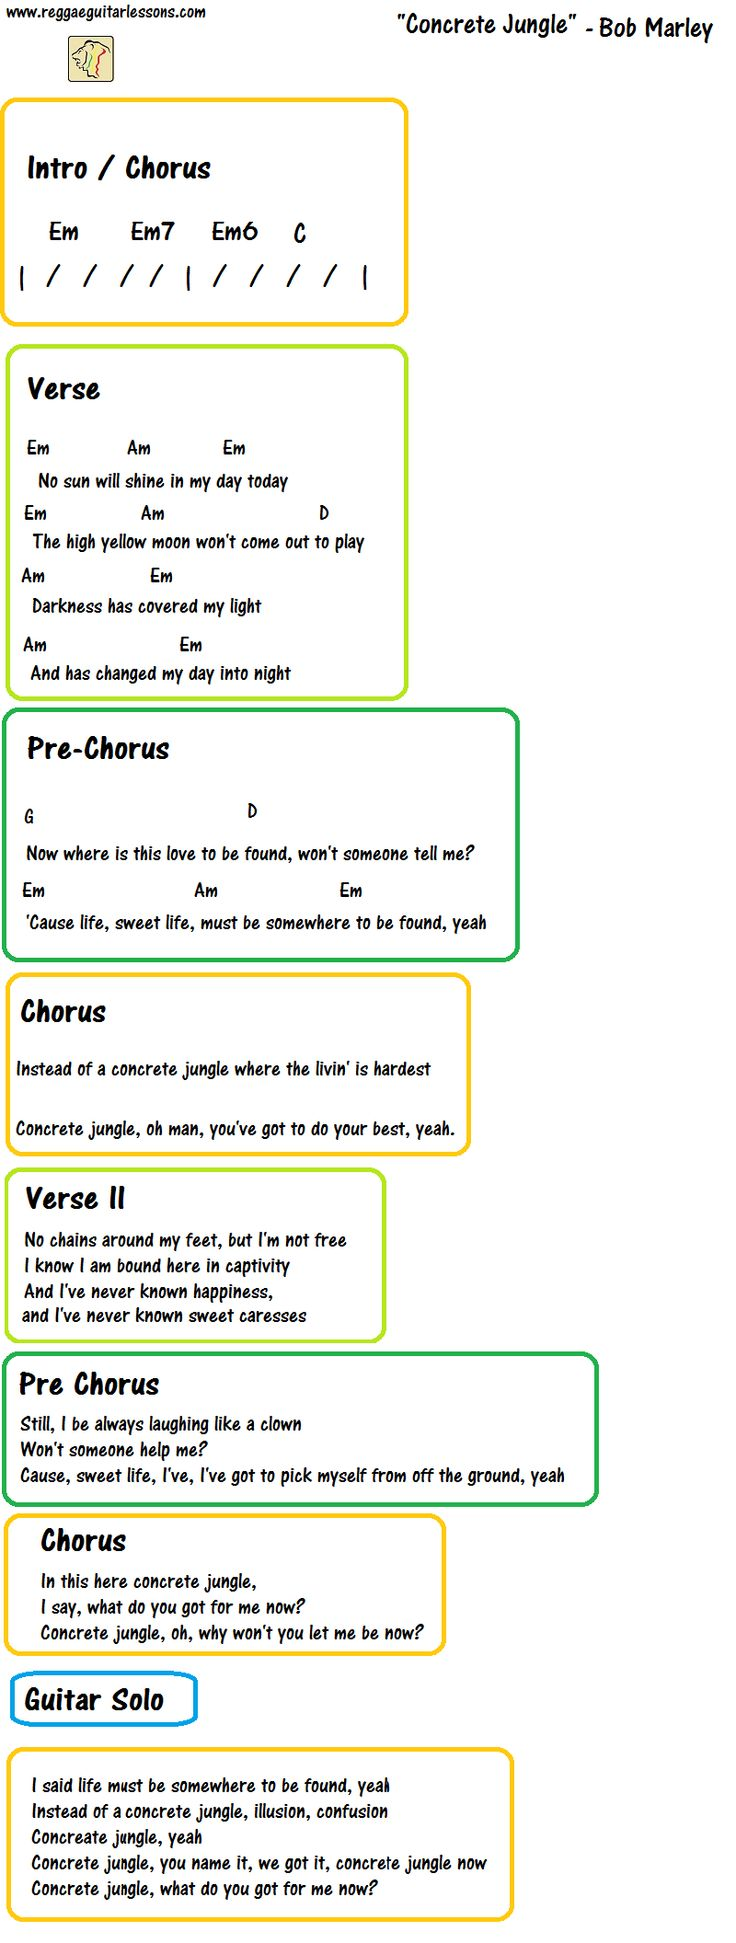 11 best guitar chord charts images on pinterest lyrics music concrete jungle chord chart bob marley lyrics learn to play easy reggae guitar songs hexwebz Image collections